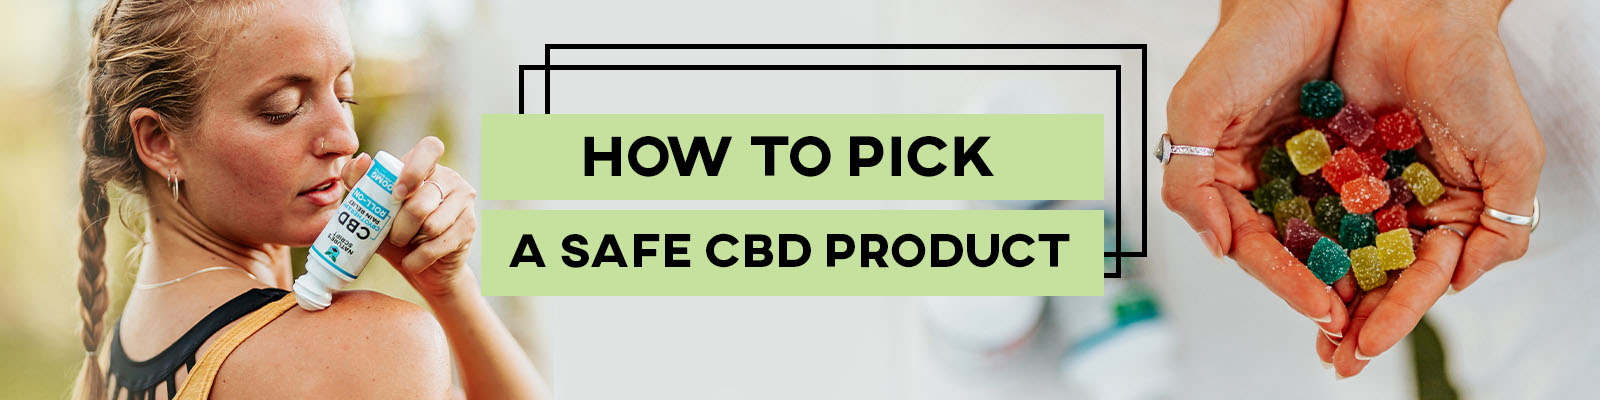 How to Pick a Safe CBD Product Banner